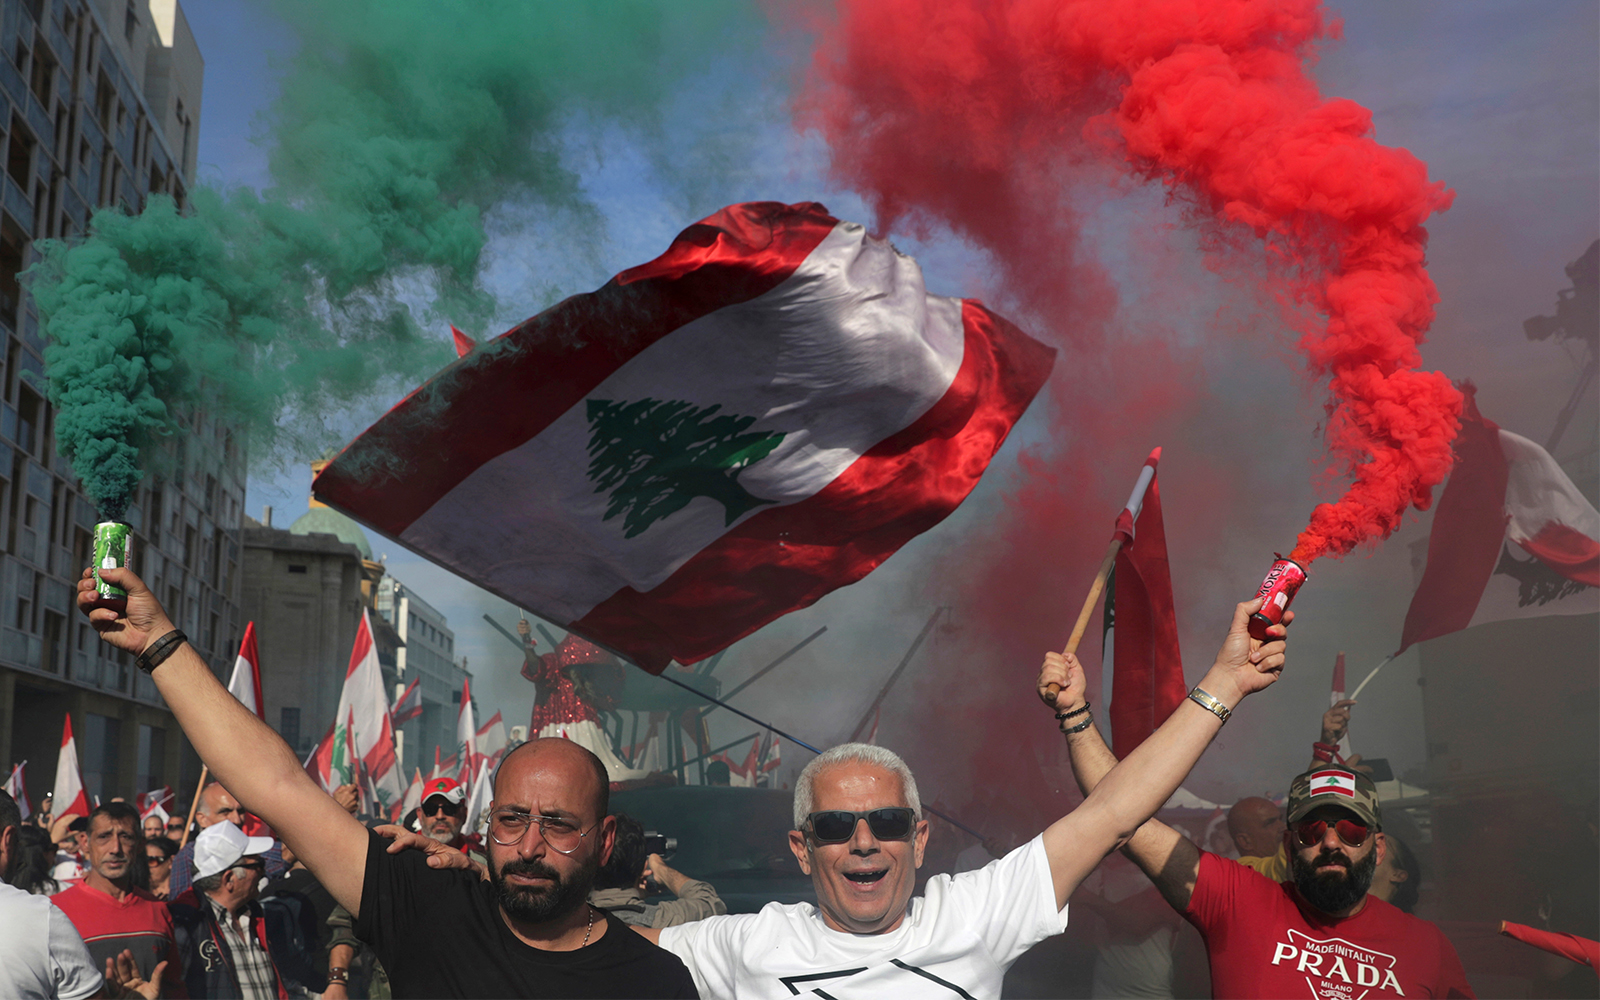 The Roots of Lebanon's Failure: It Votes, But Is Not a